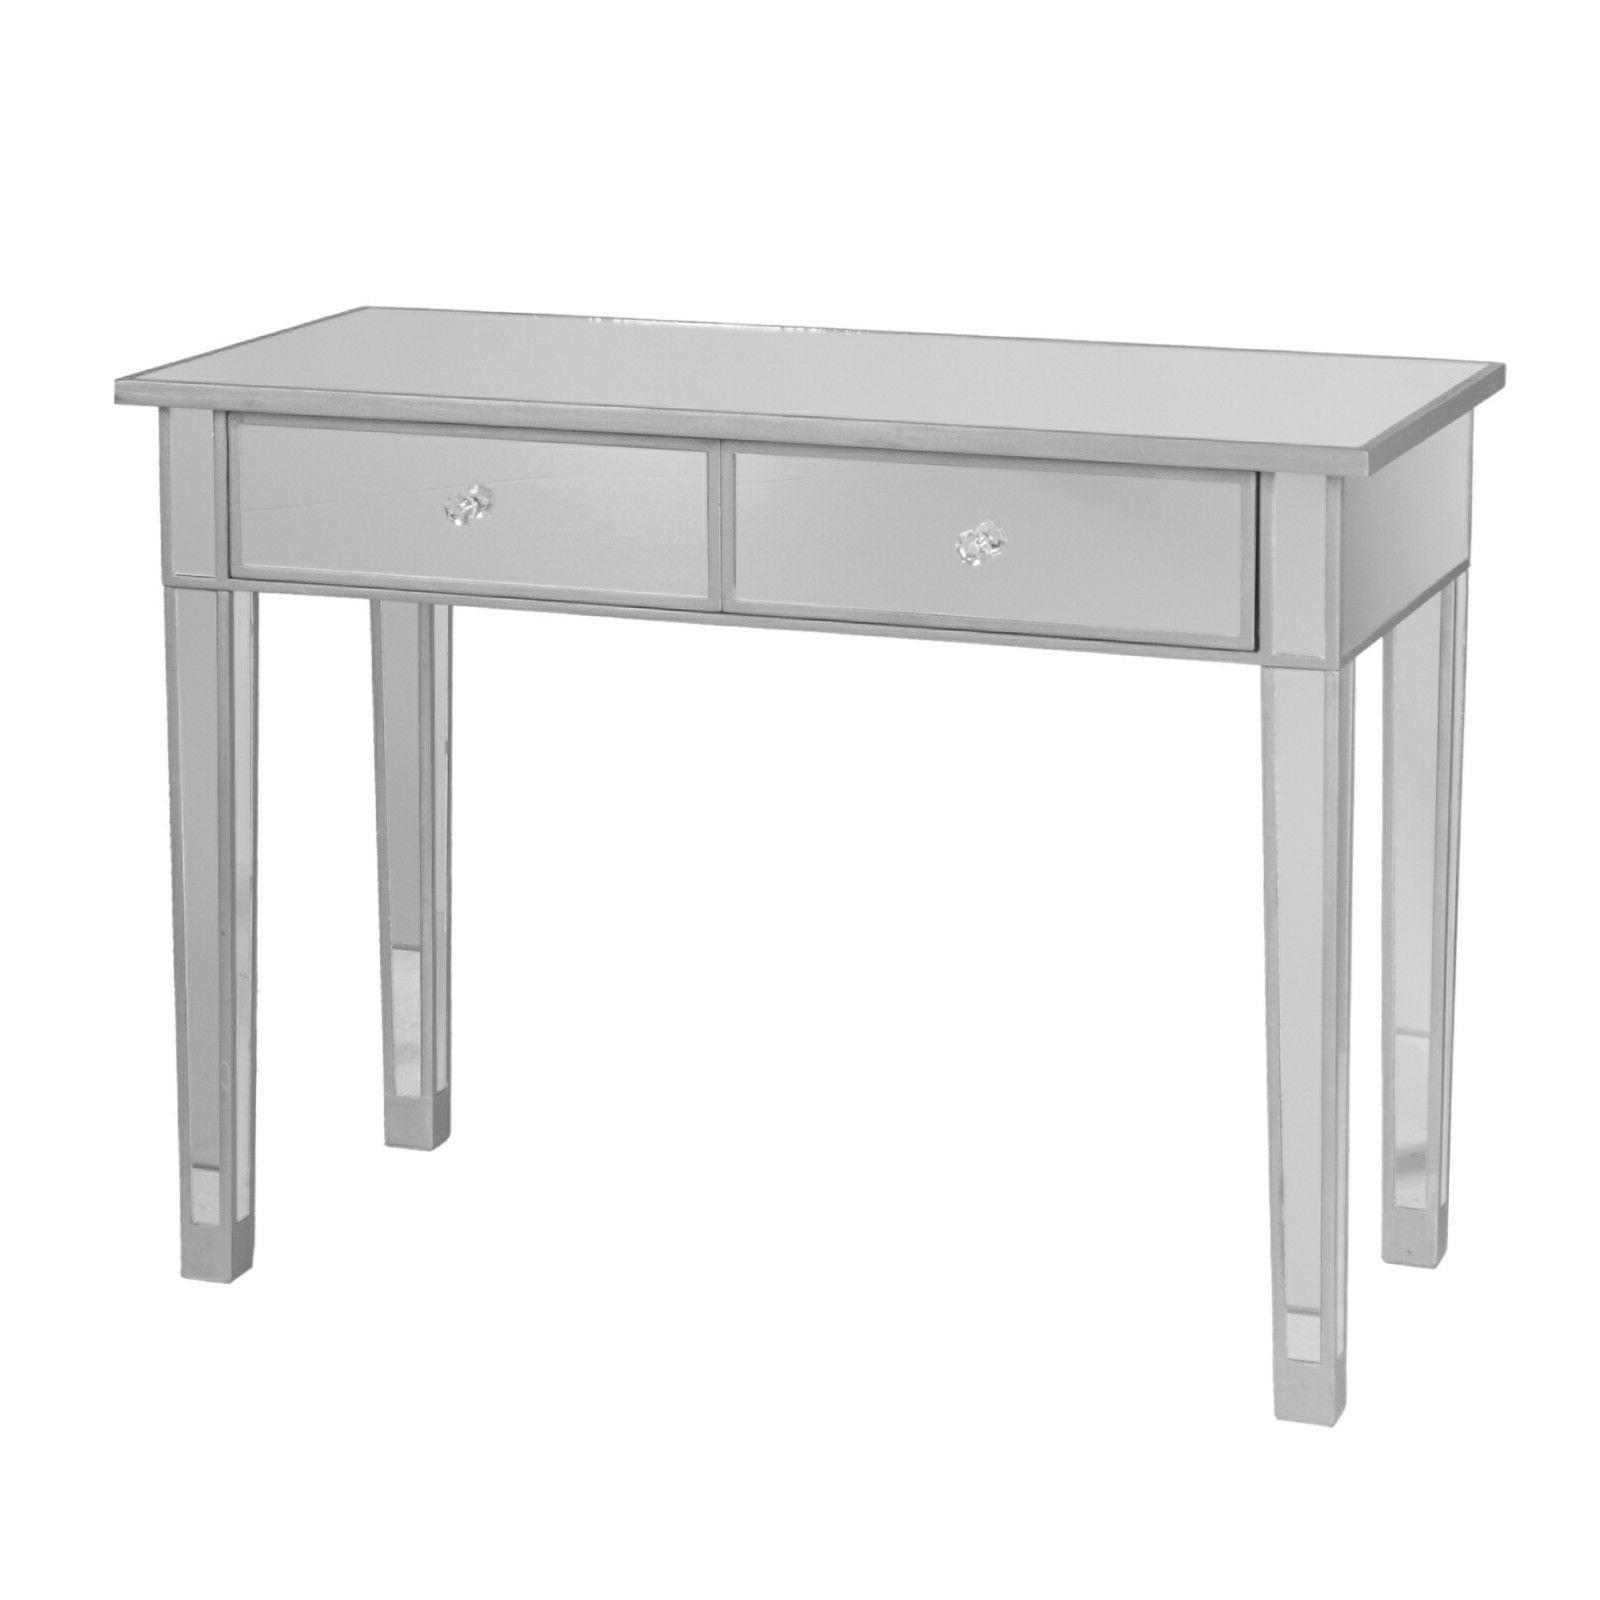 CMT36919 SILVER DRAWERS TABLE